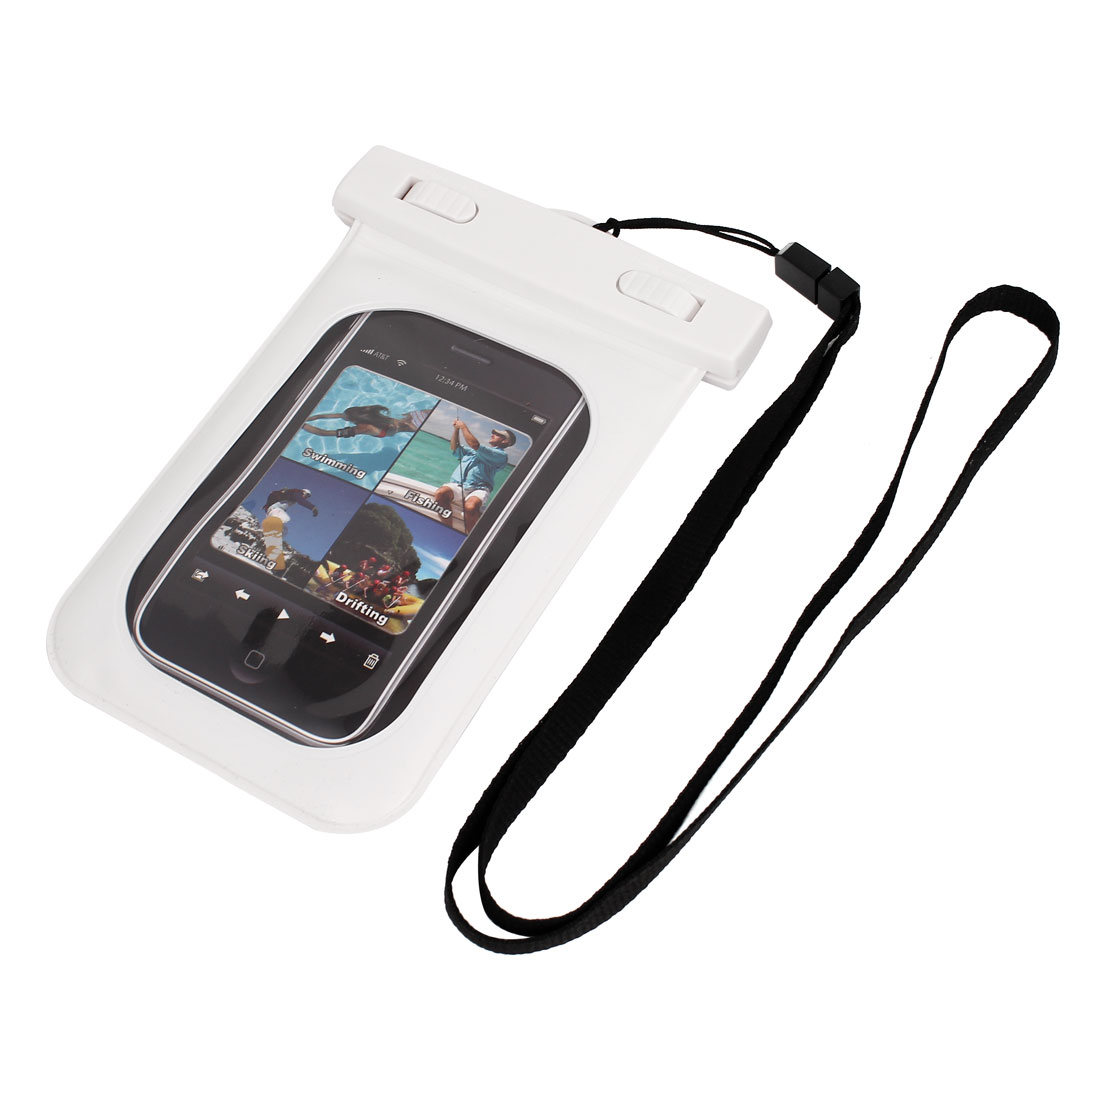 Waterproof Swimming Pouch Dry Bag Case White for iPhone 4G w Neck Strap